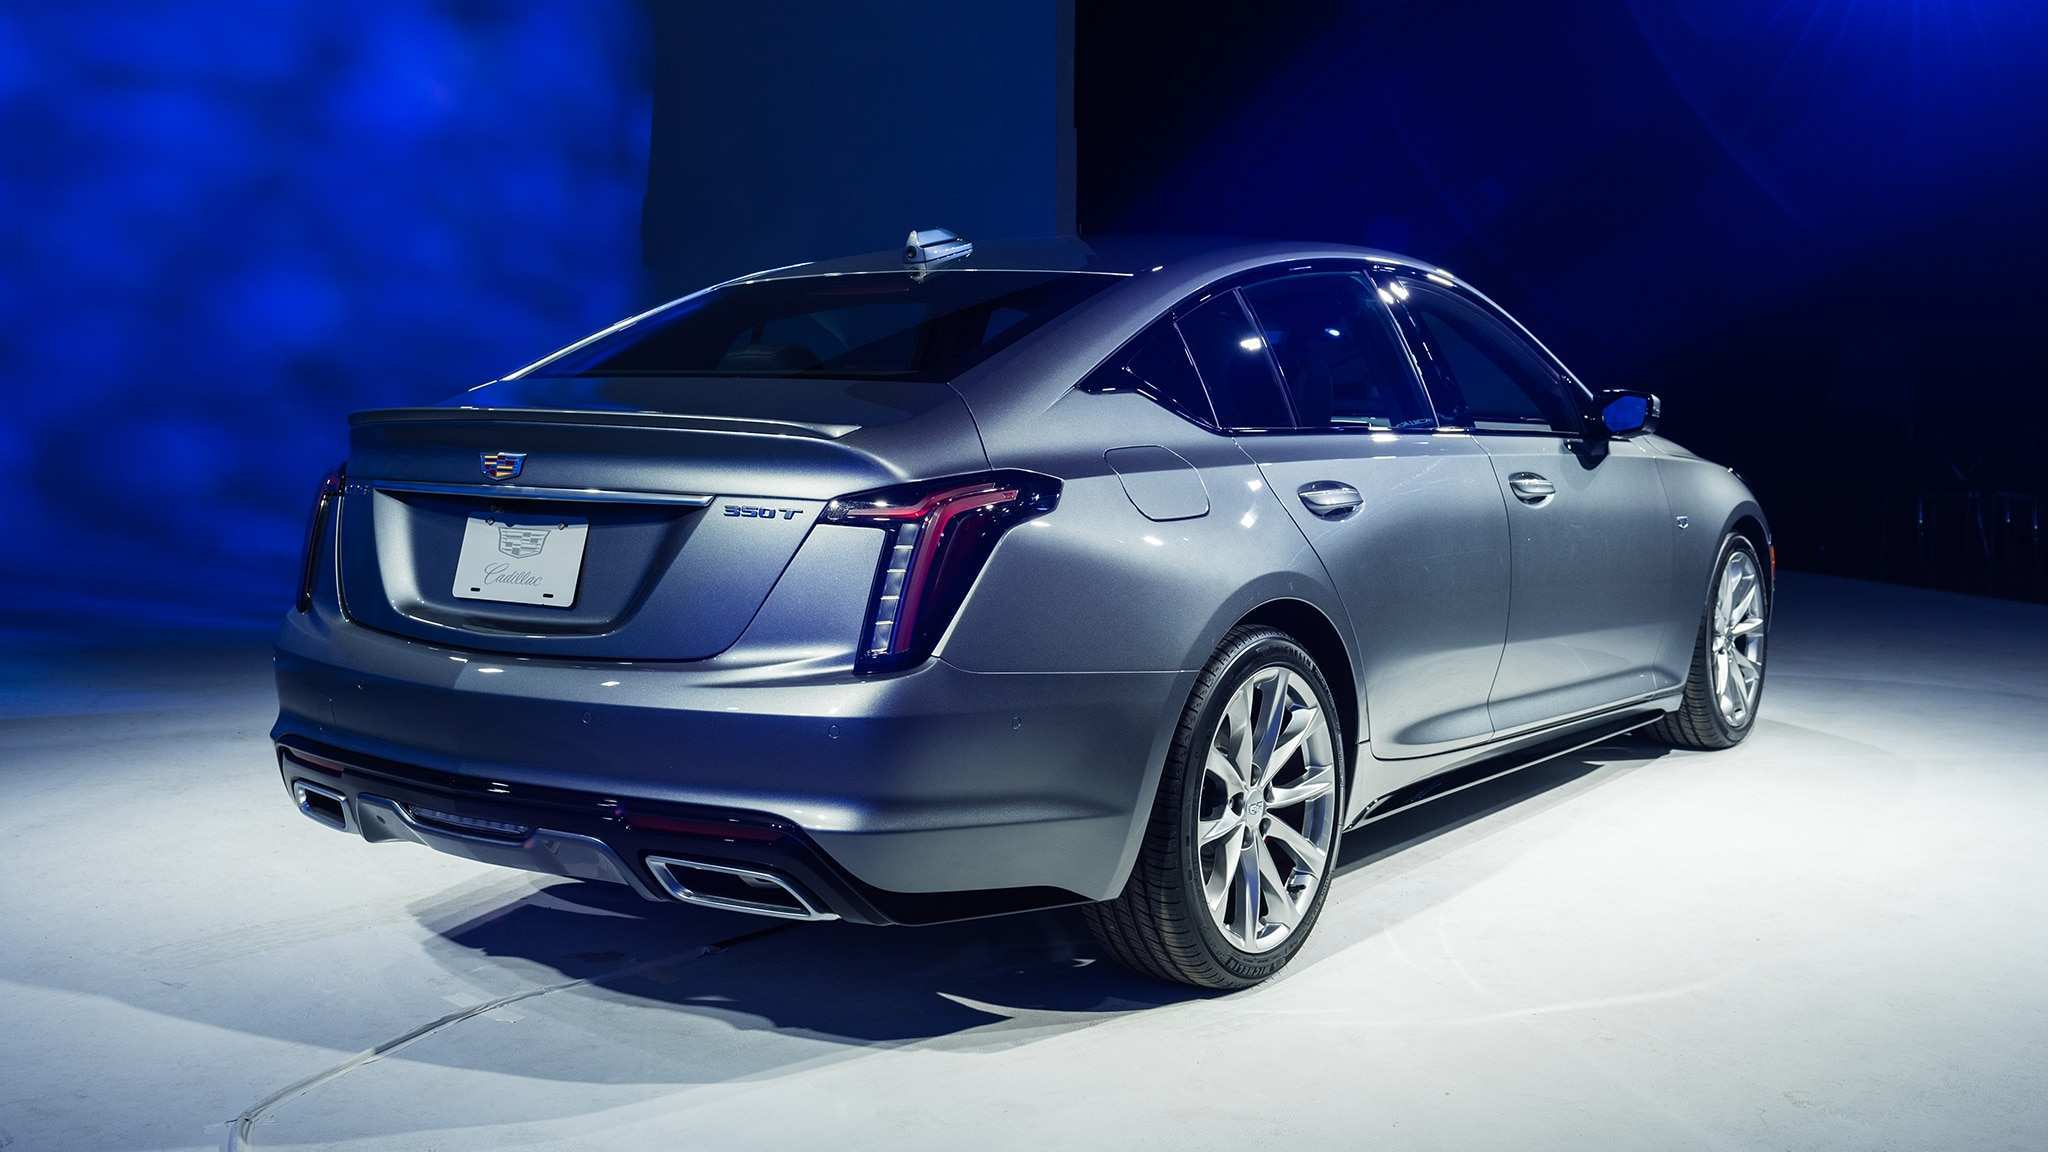 30 The Best Cadillac Sedans 2020 Pricing